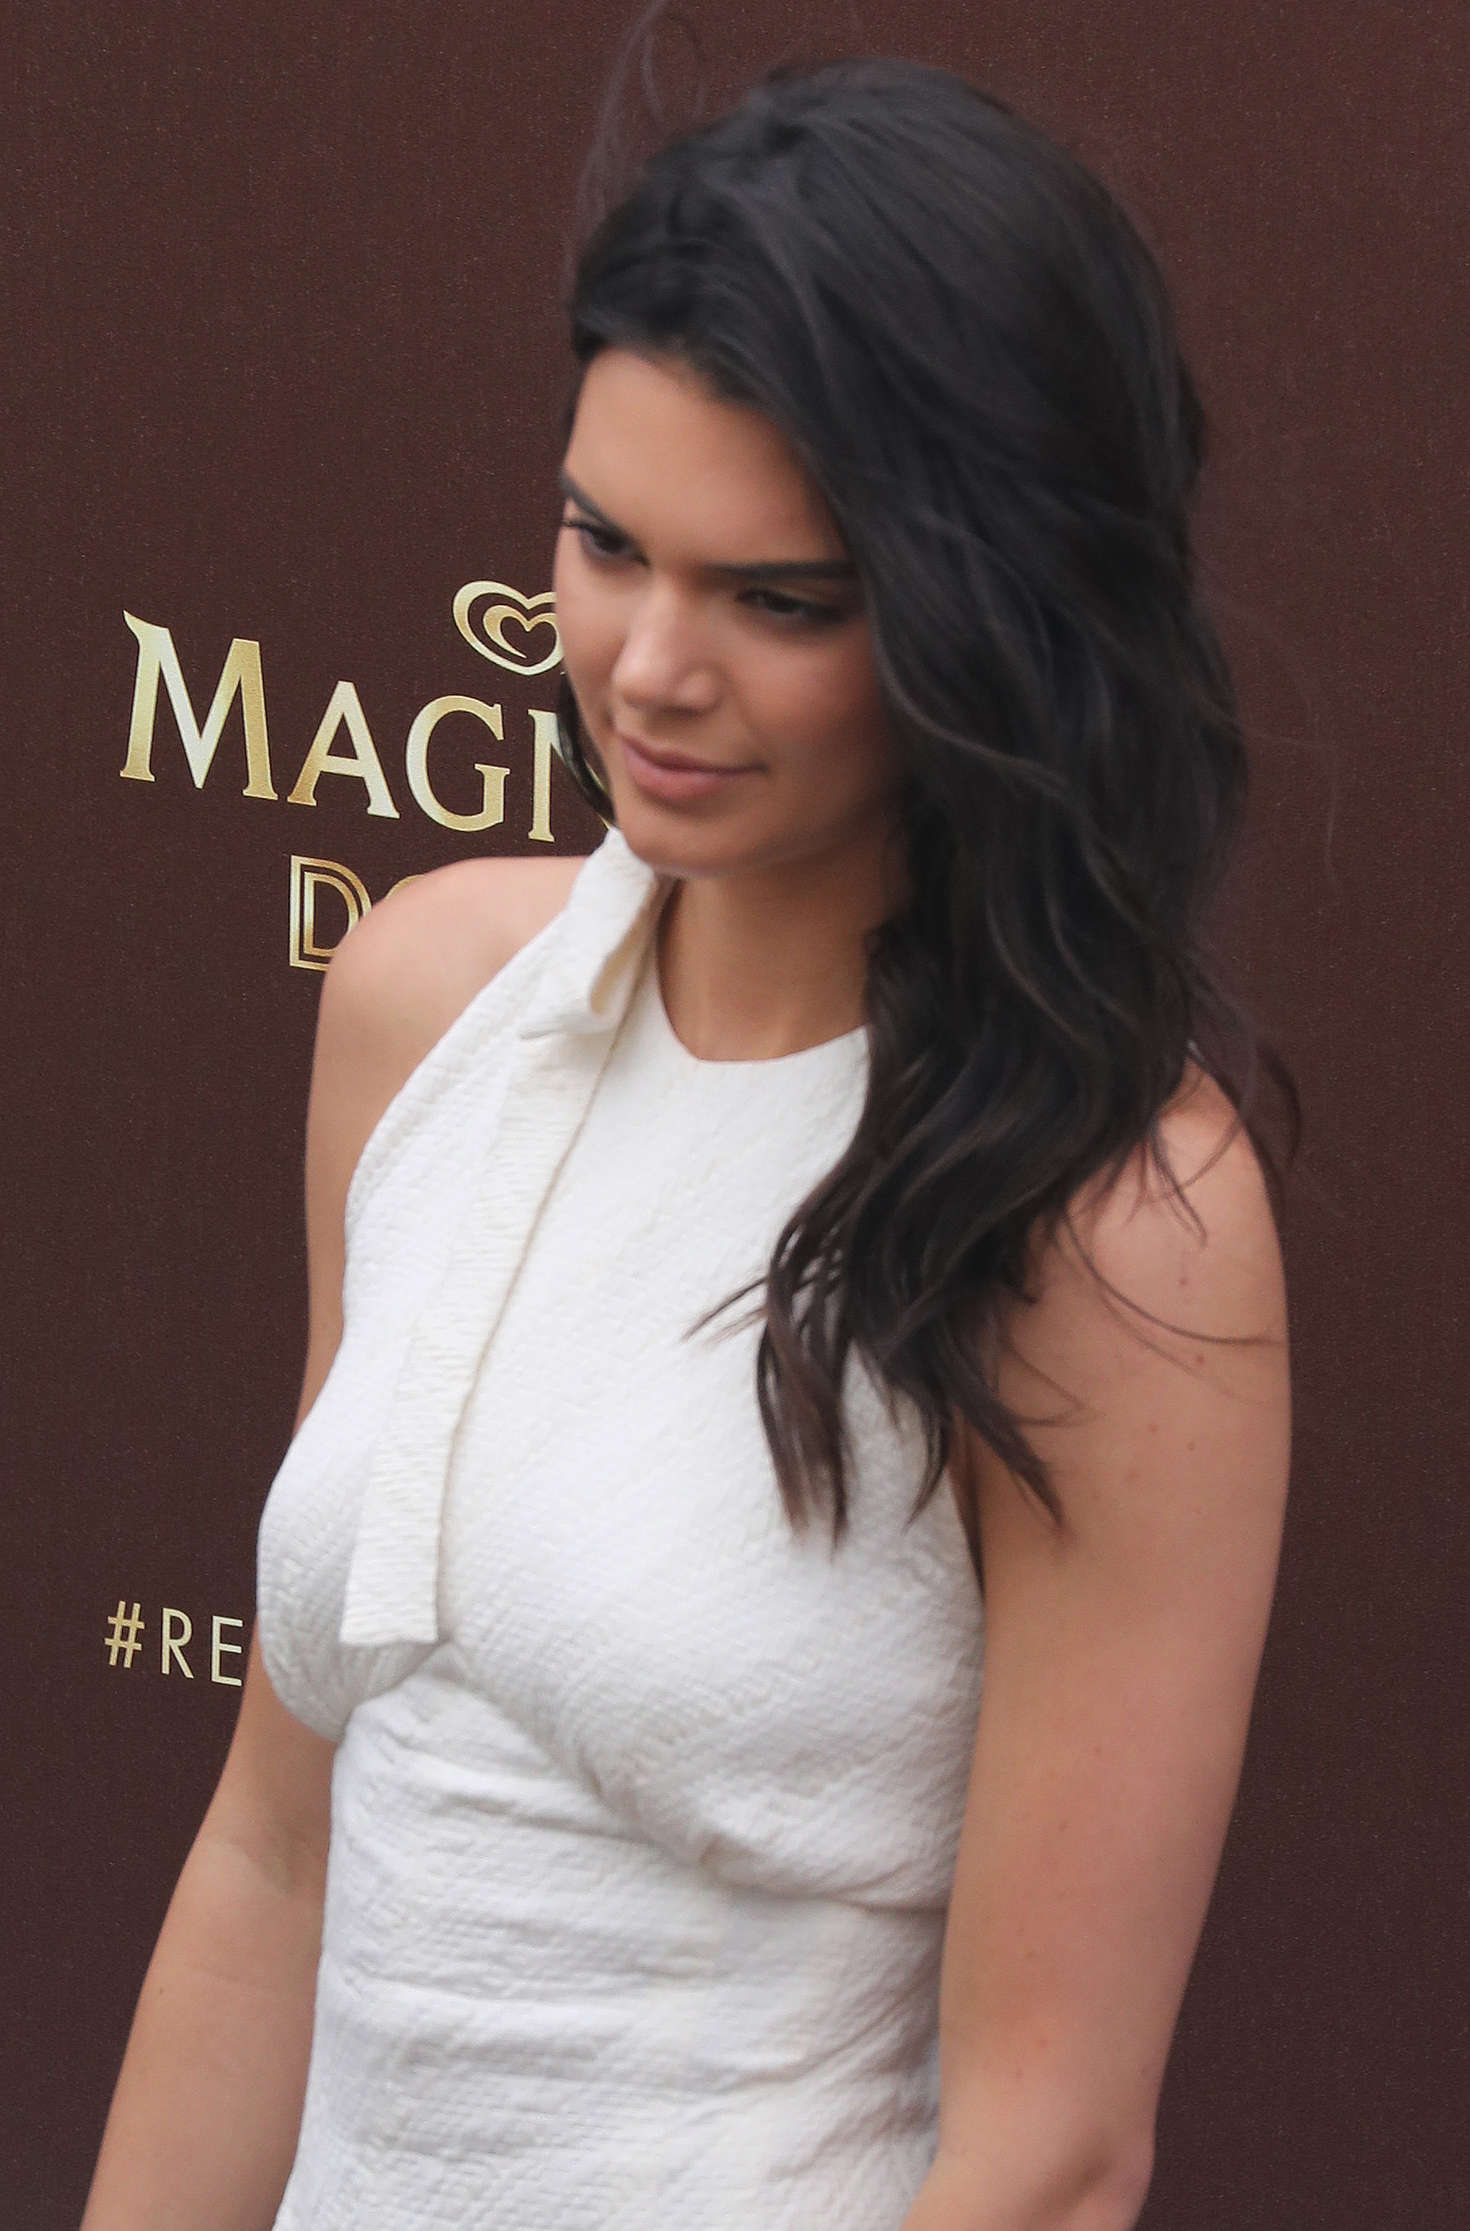 Kendall Jenner - Magnum Beach during the 69th Cannes Film Festival